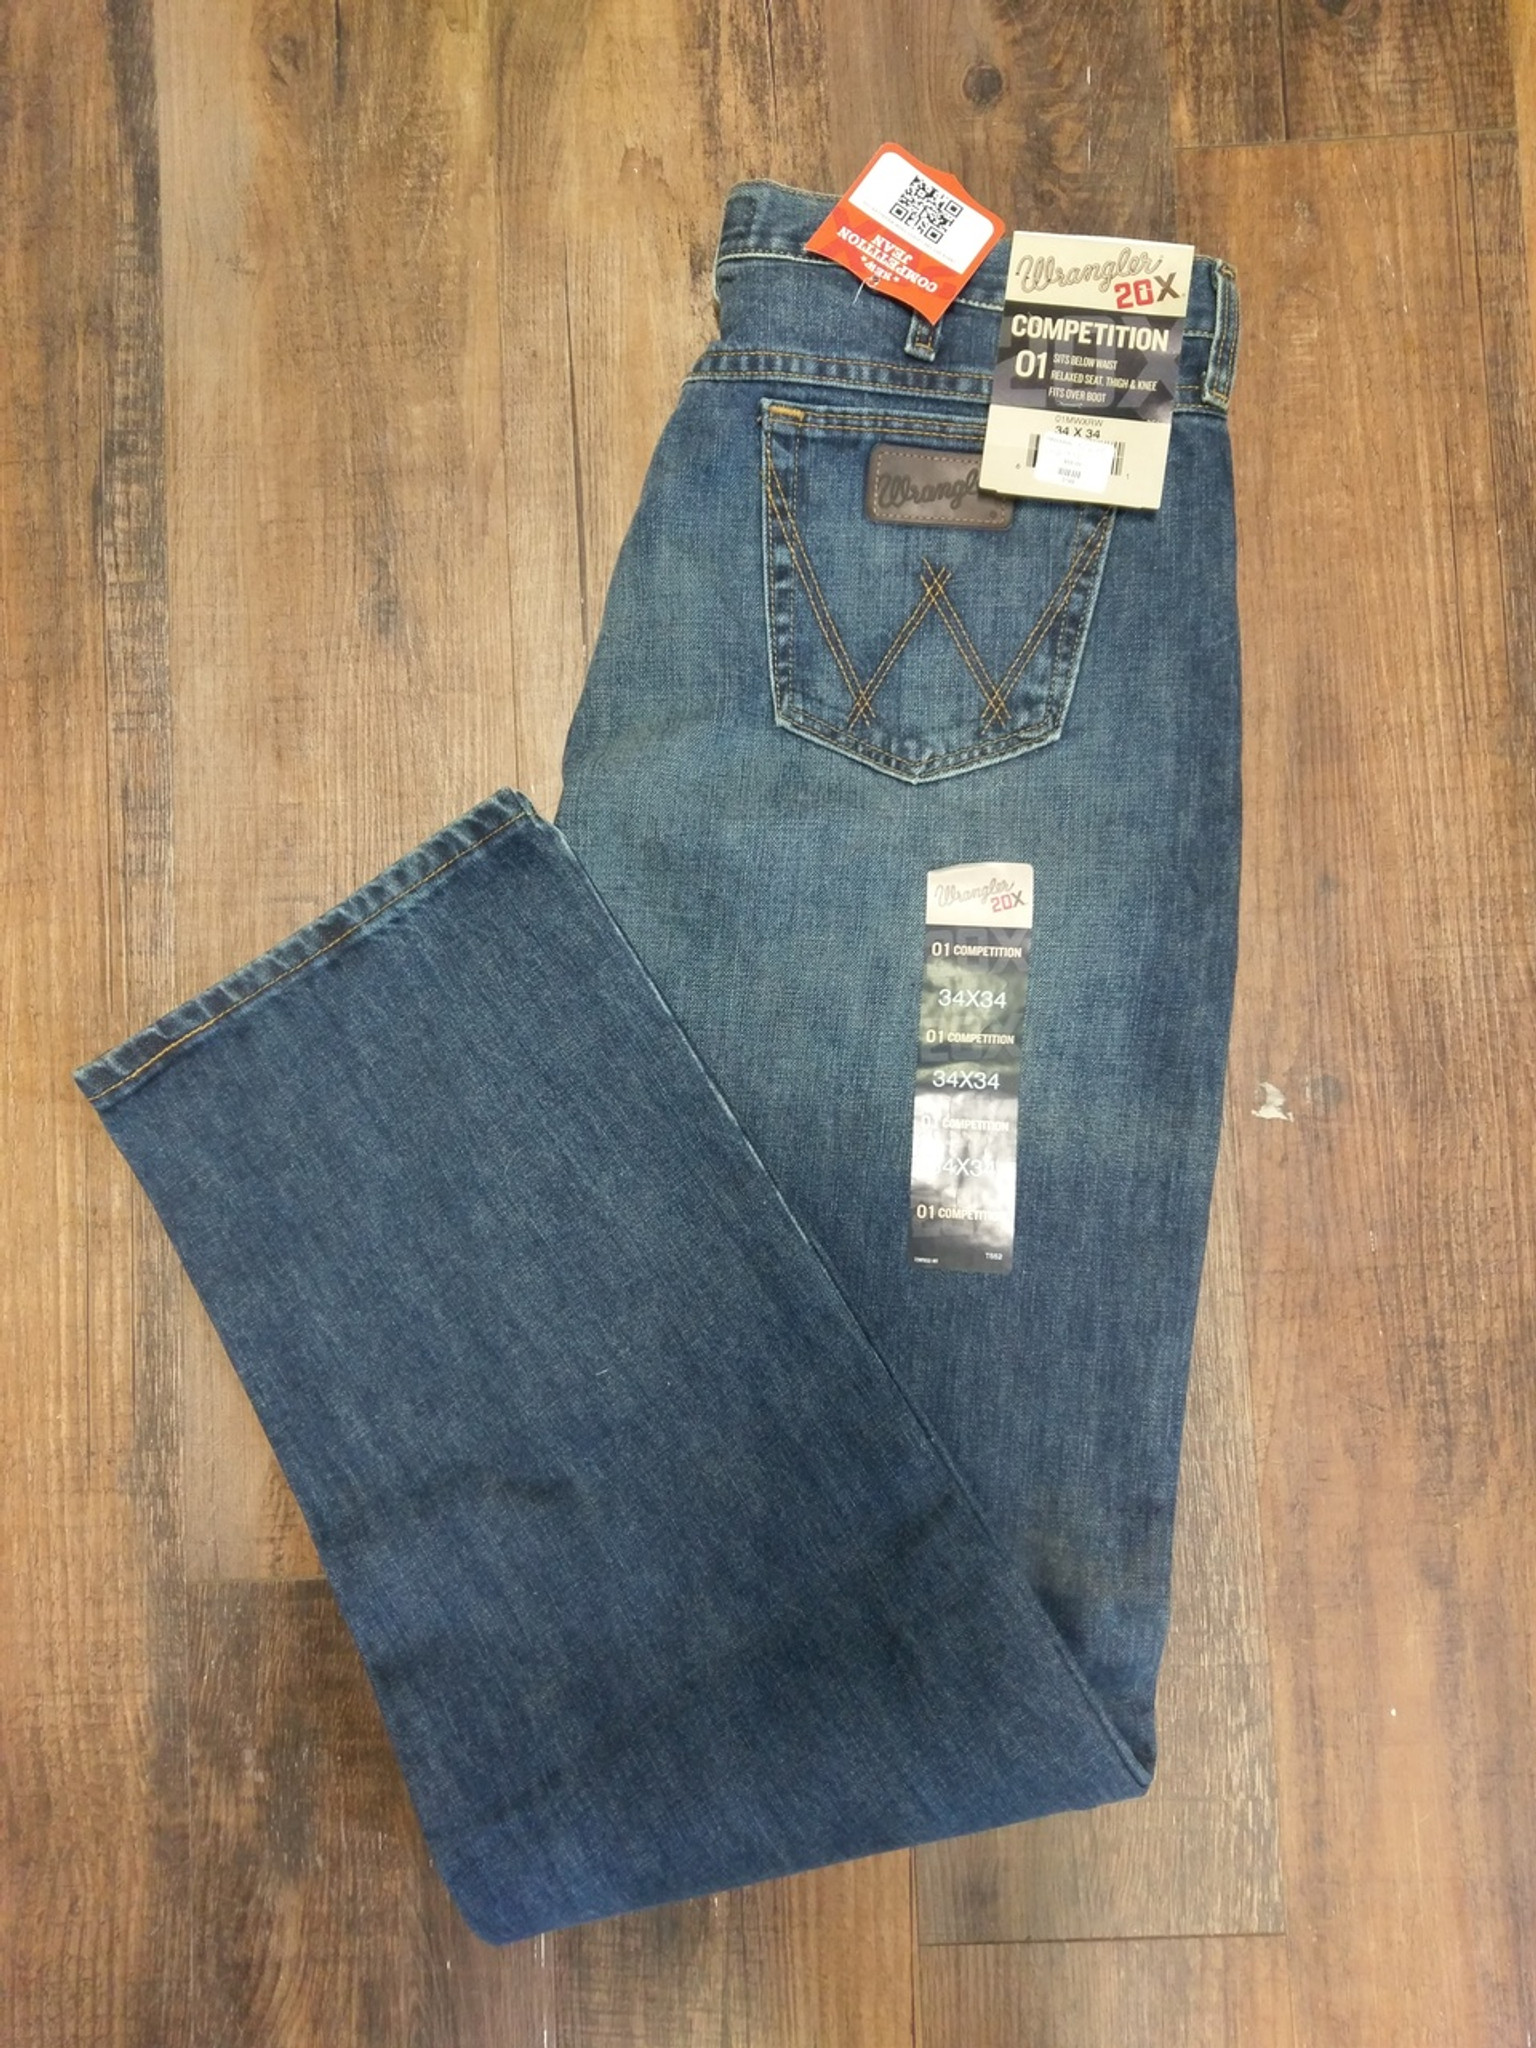 52ea0cd1 Wrangler Jeans 20x Competition Mens NEW, 30% off original retail, 01MWXRW,  various sizes - Hitchin' Post Trailers, LLC